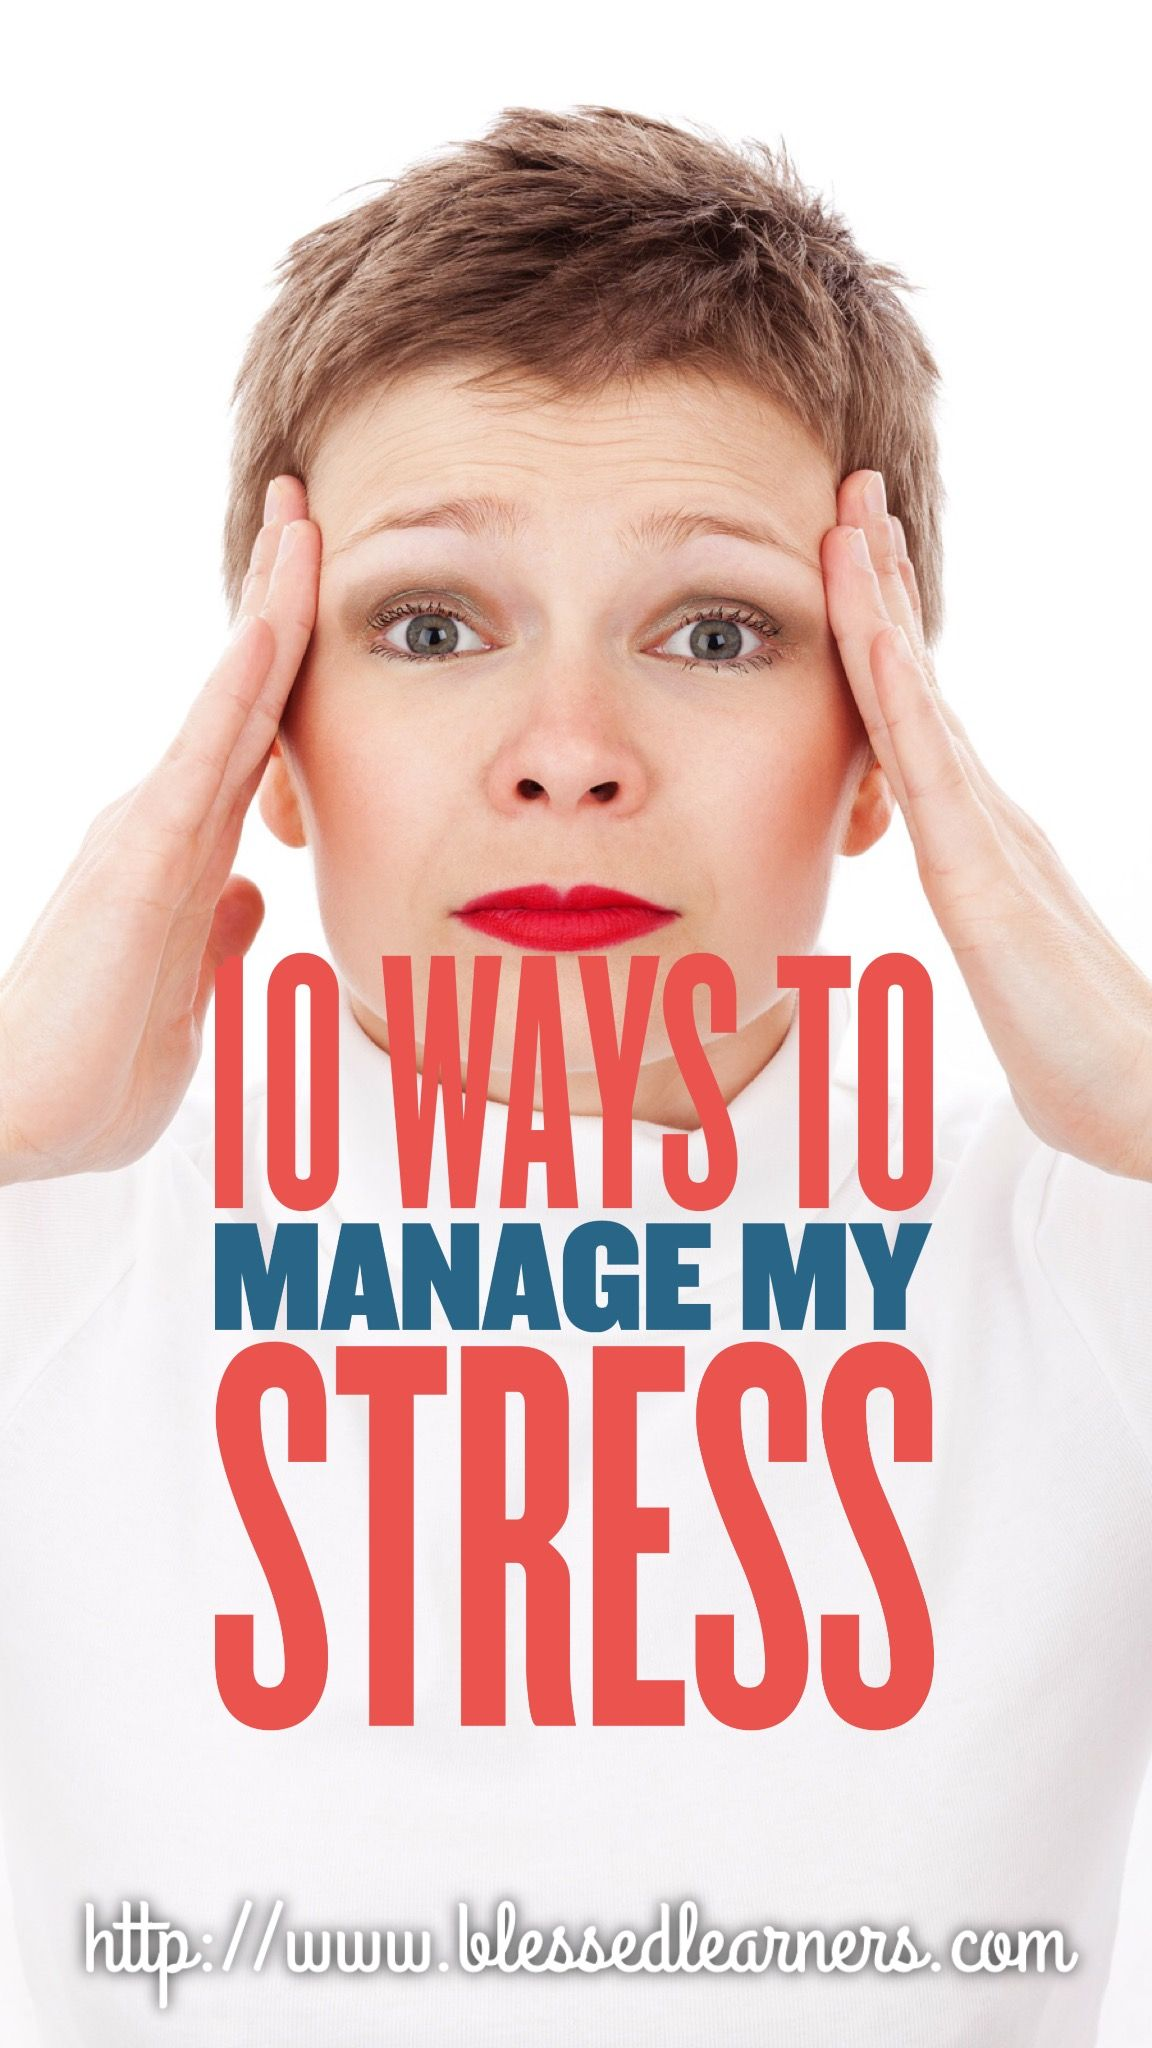 Getting stressful is something common in the modern world, but we need to be able to manage stress. Stress can be harmful when we cannot manage.